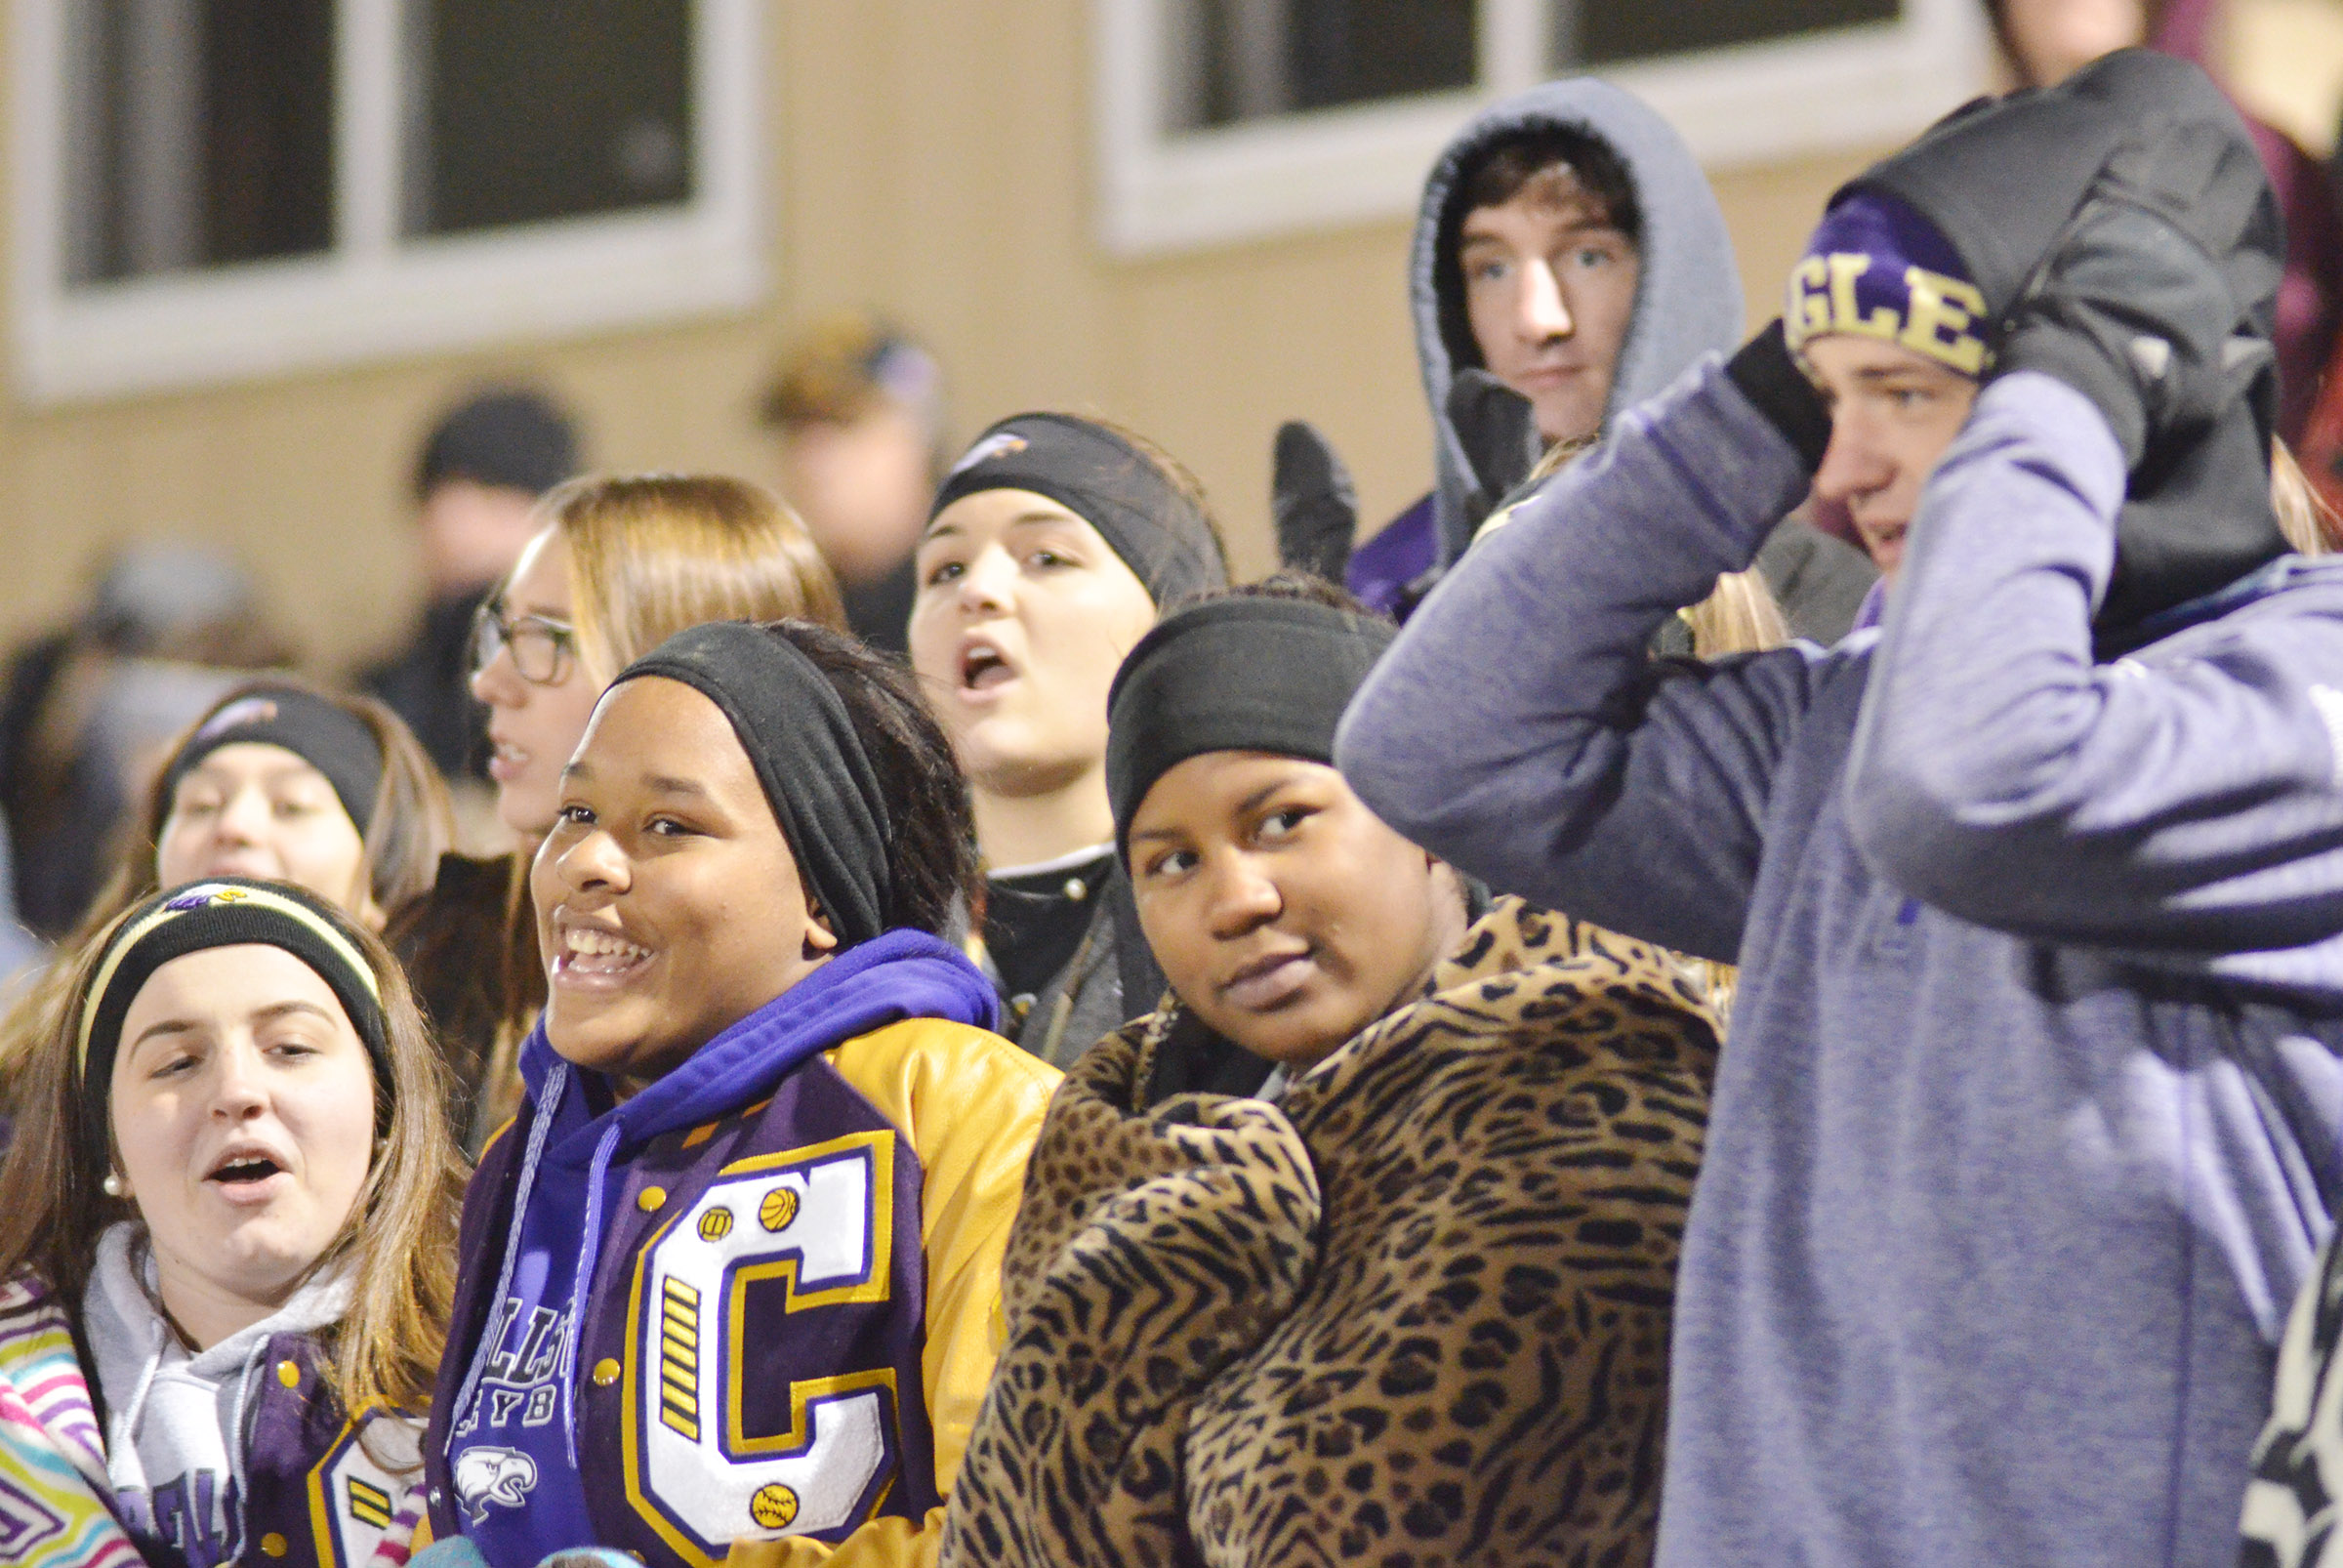 CHS students cheer for the Eagles, despite the cold weather.